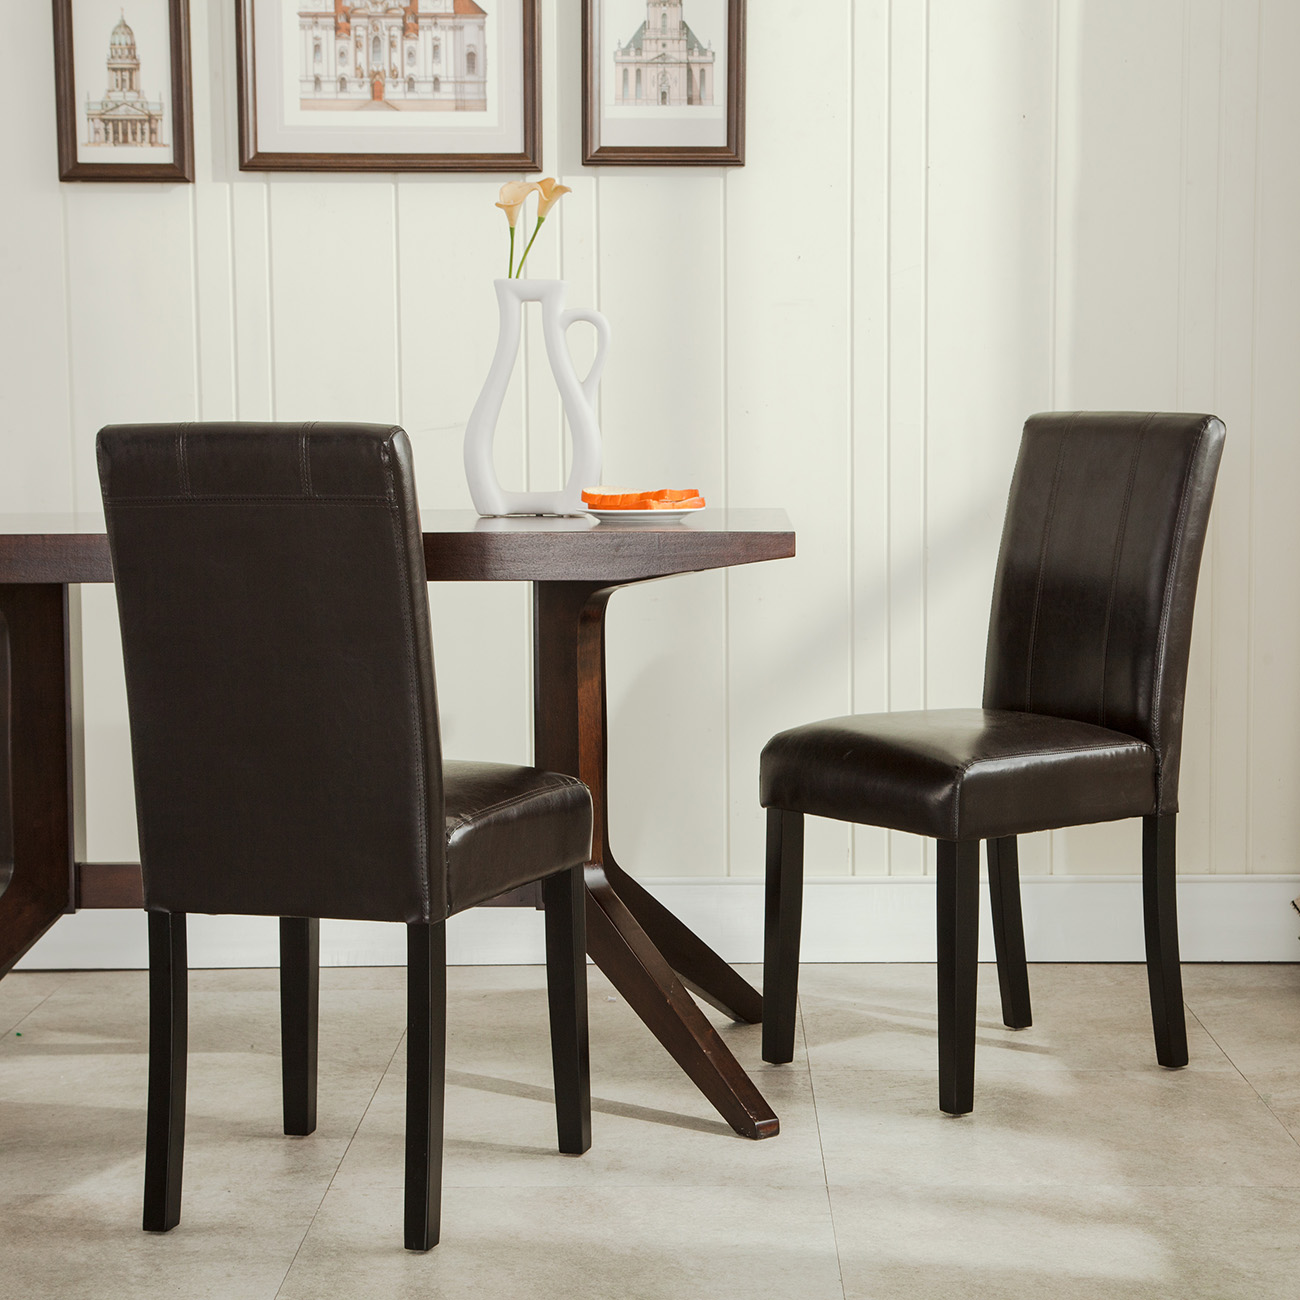 Dining Room Furniture With Bench: Elegant Modern Parsons Chair Leather Dining Living Room